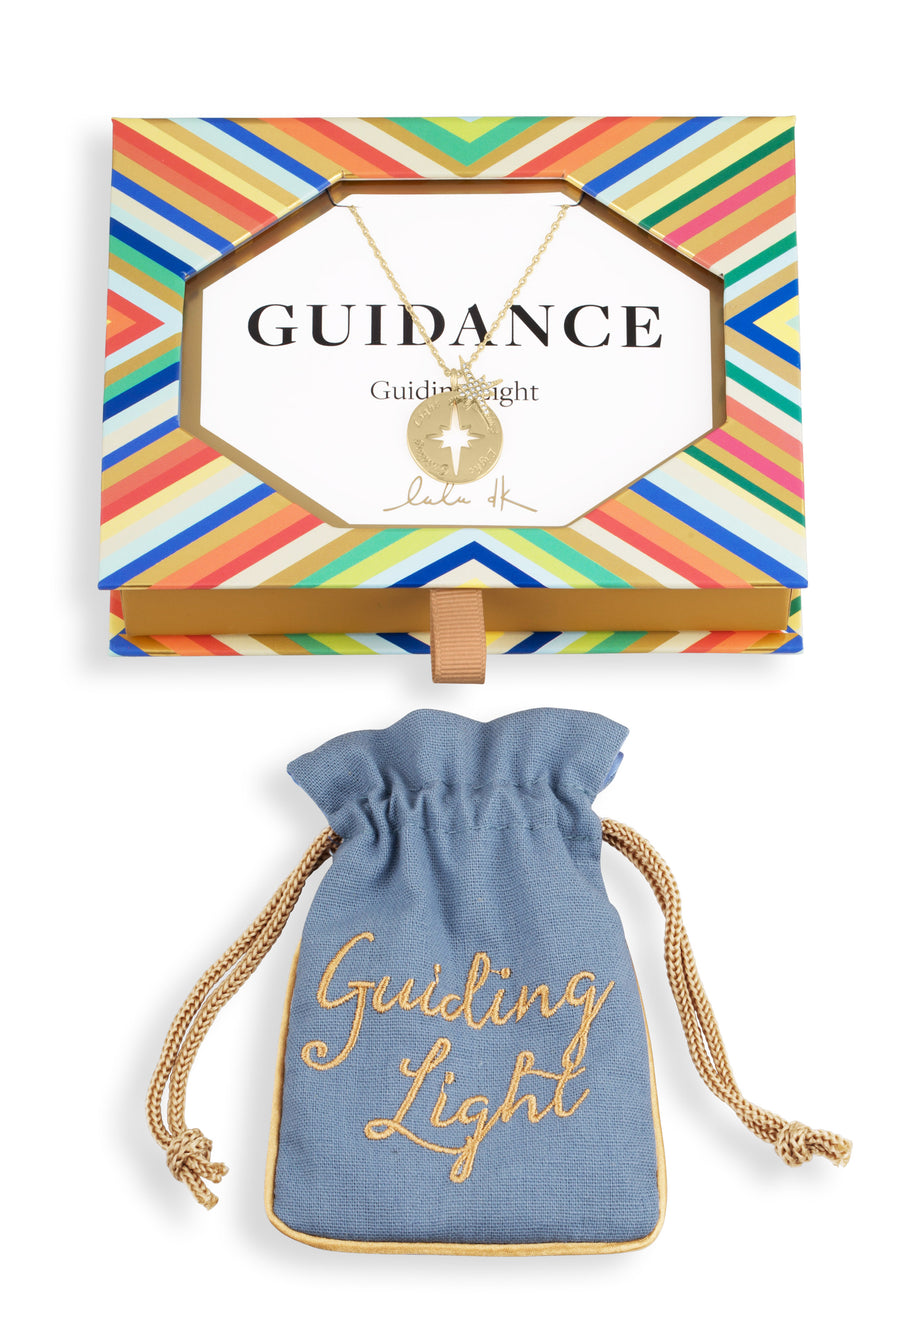 'Guidance' Medallion Cutout